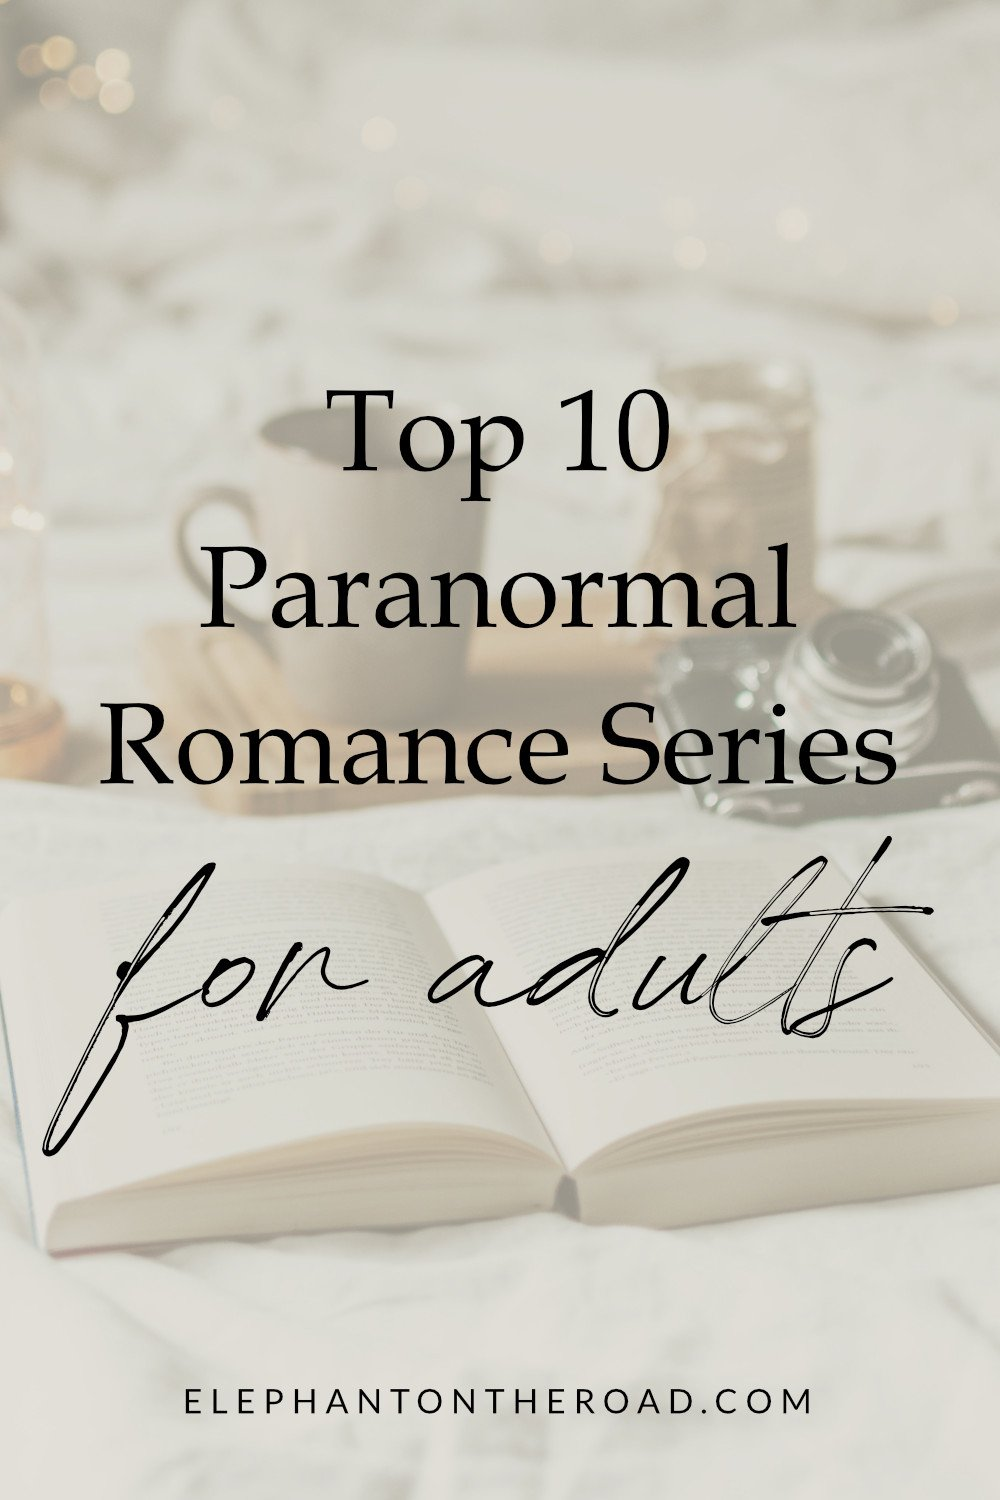 Top 10 Paranormal Romance Series For Adults. Paranormal Romance Books. Best Paranormal Books. Books To Read On Halloween. Halloween Romance Books. Paranormal Romance Novels. Halloween Books For Adults. Books About Werewolves. Books About Vampires. Books About Aliens. Elephant on the Road.